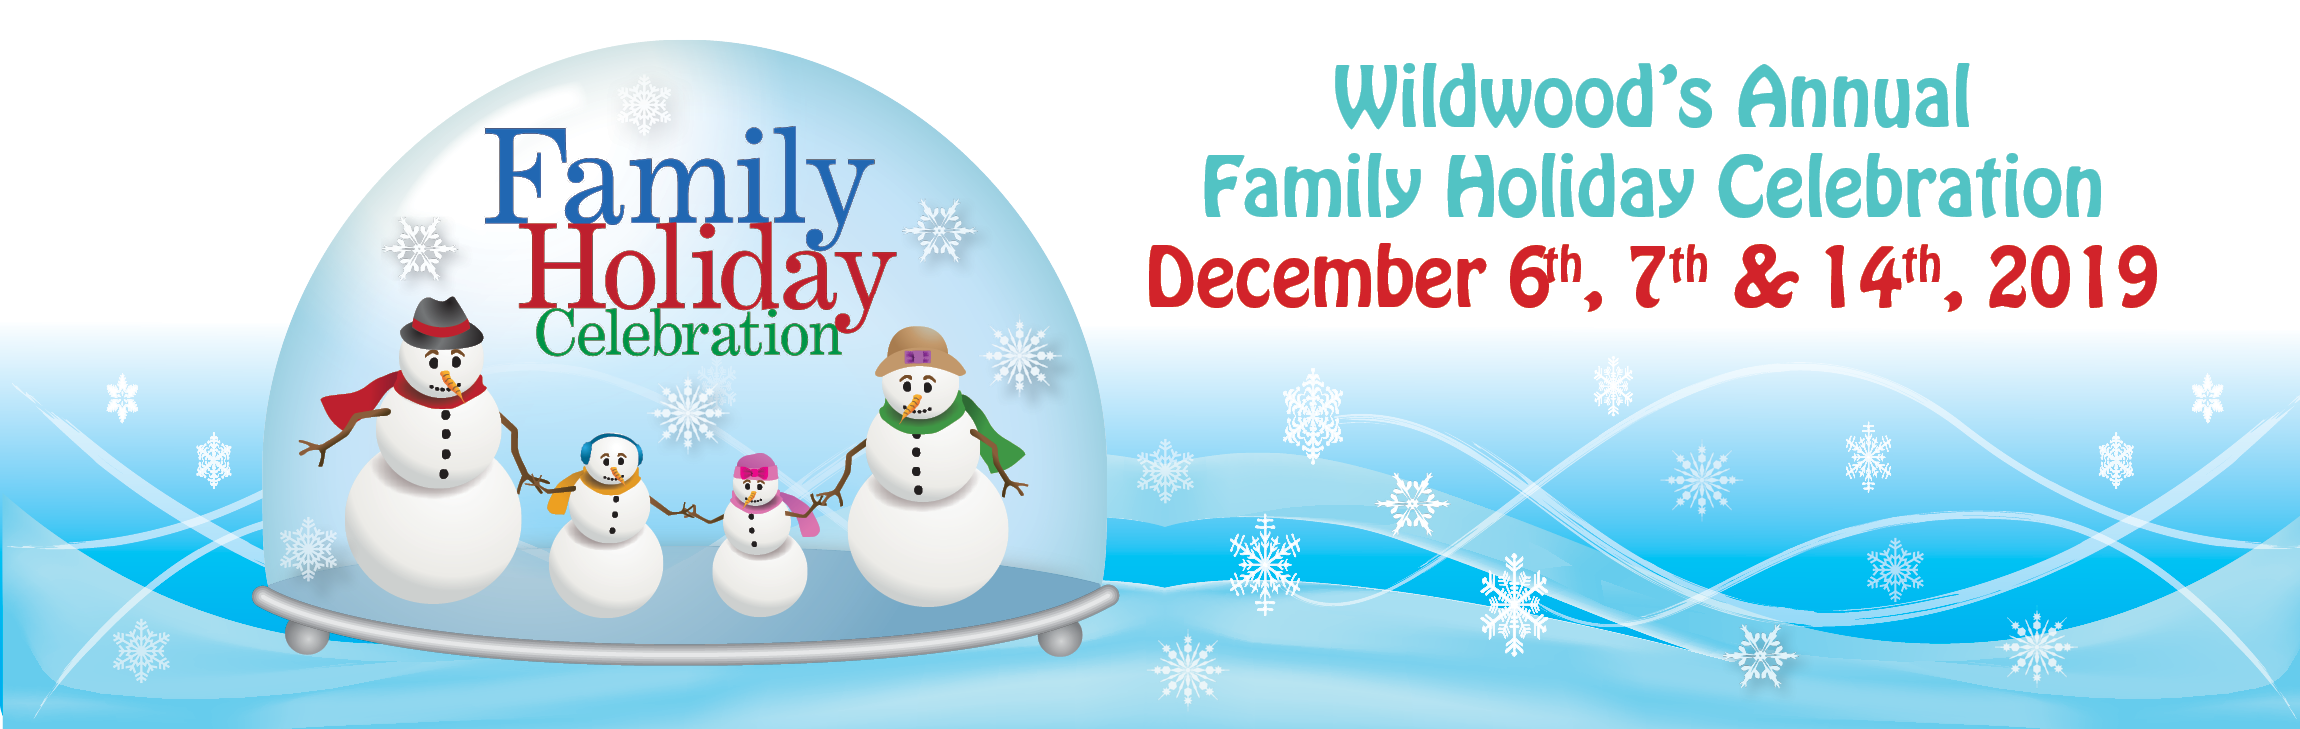 Wildwoods' Family Holiday Celebration